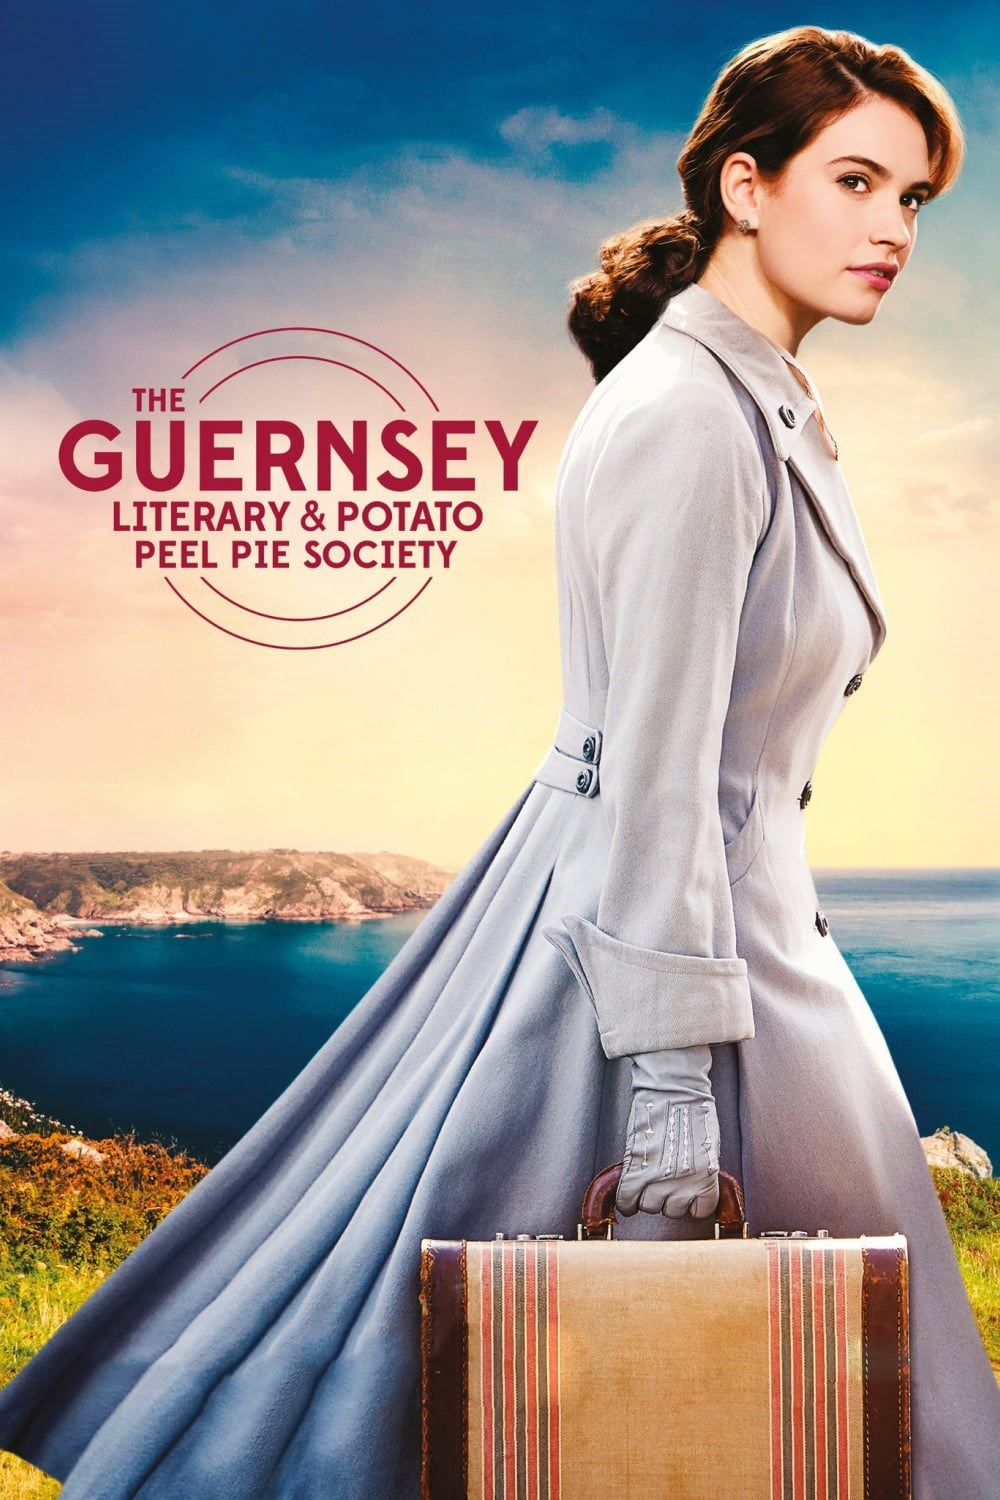 the-guernsey-literary-and-potato-peel-pie-society.119573.jpg